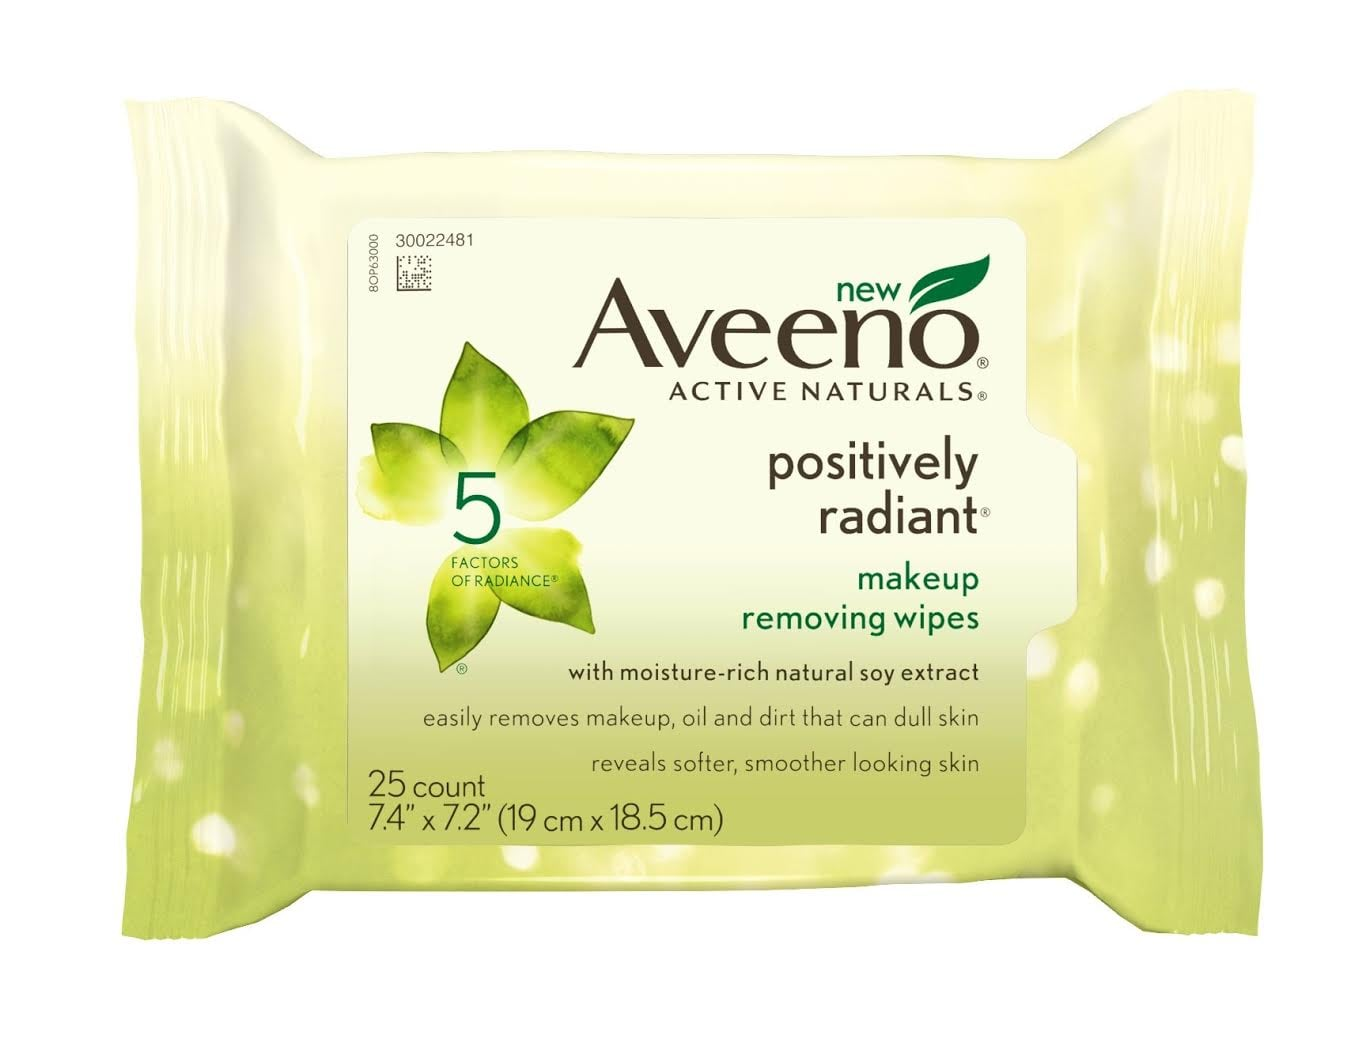 Aveeno Positively Radiant Makeup Wipes